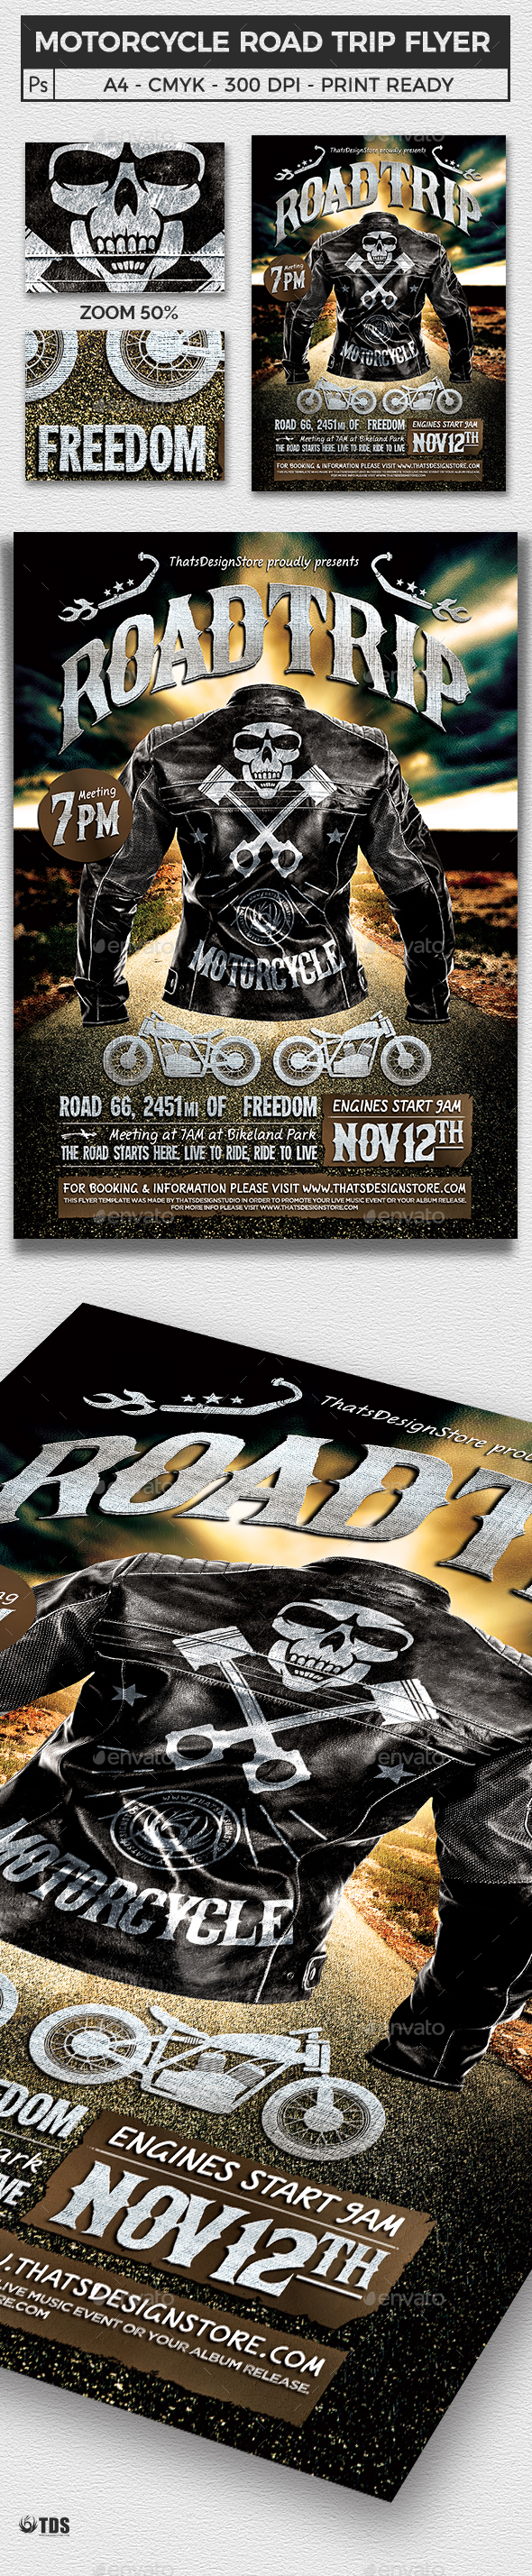 Motorcycle Road Trip Flyer Template V1 - Miscellaneous Events